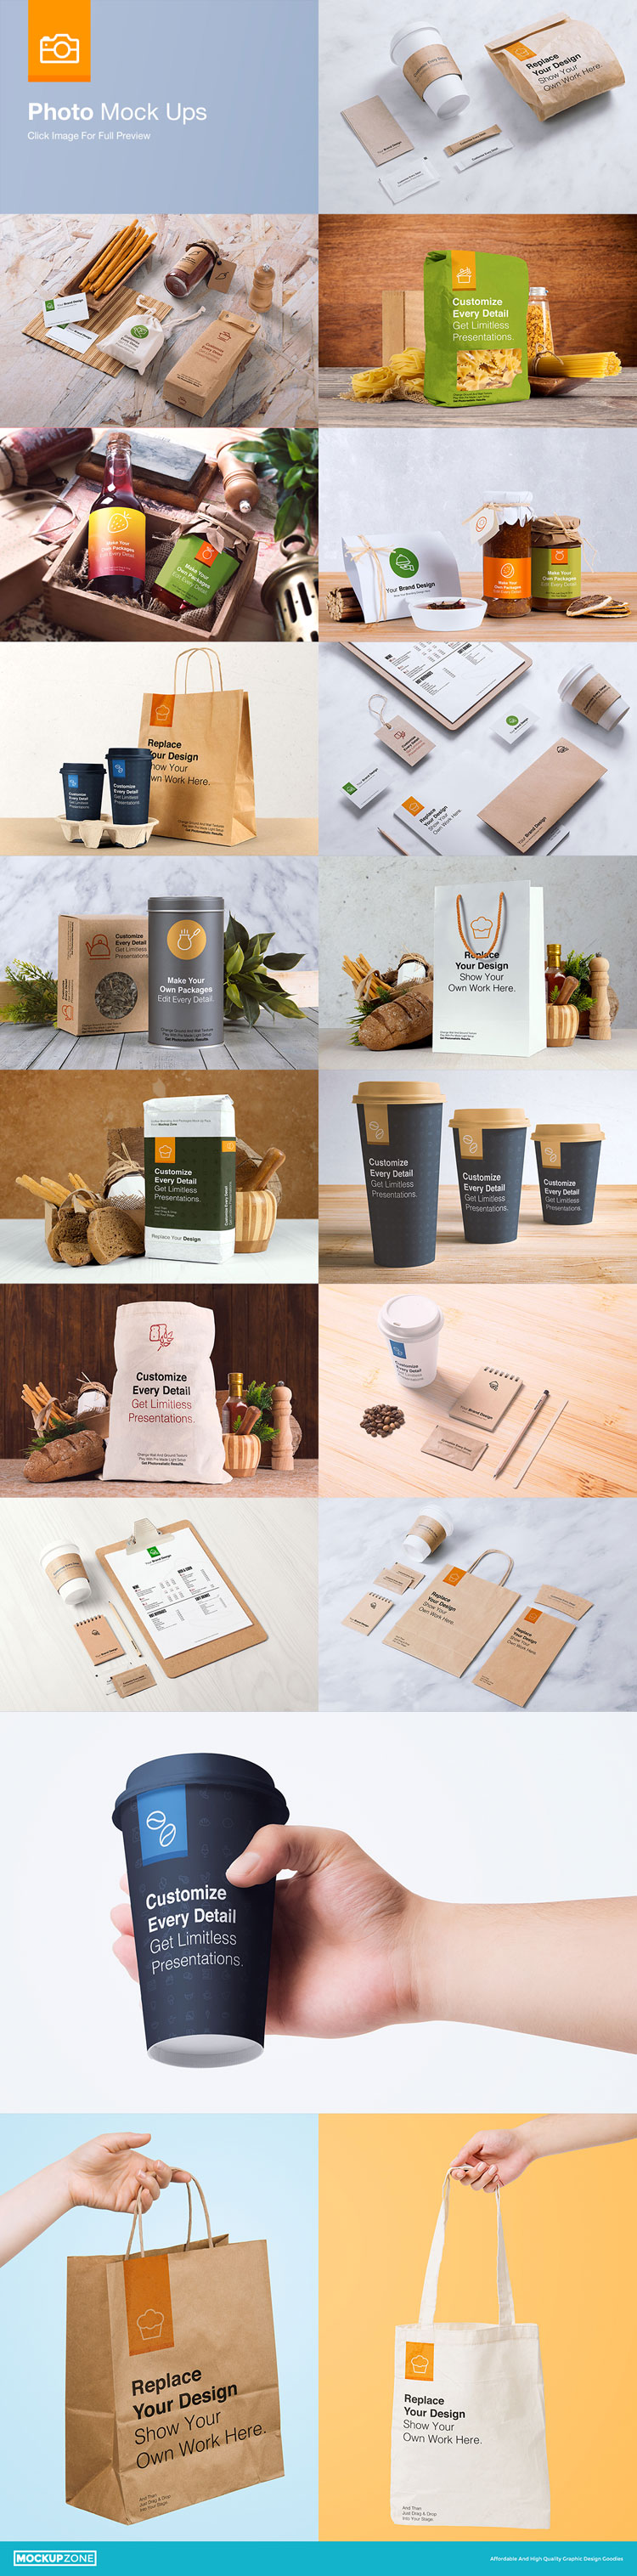 Coffee Branding and Packages MockUp